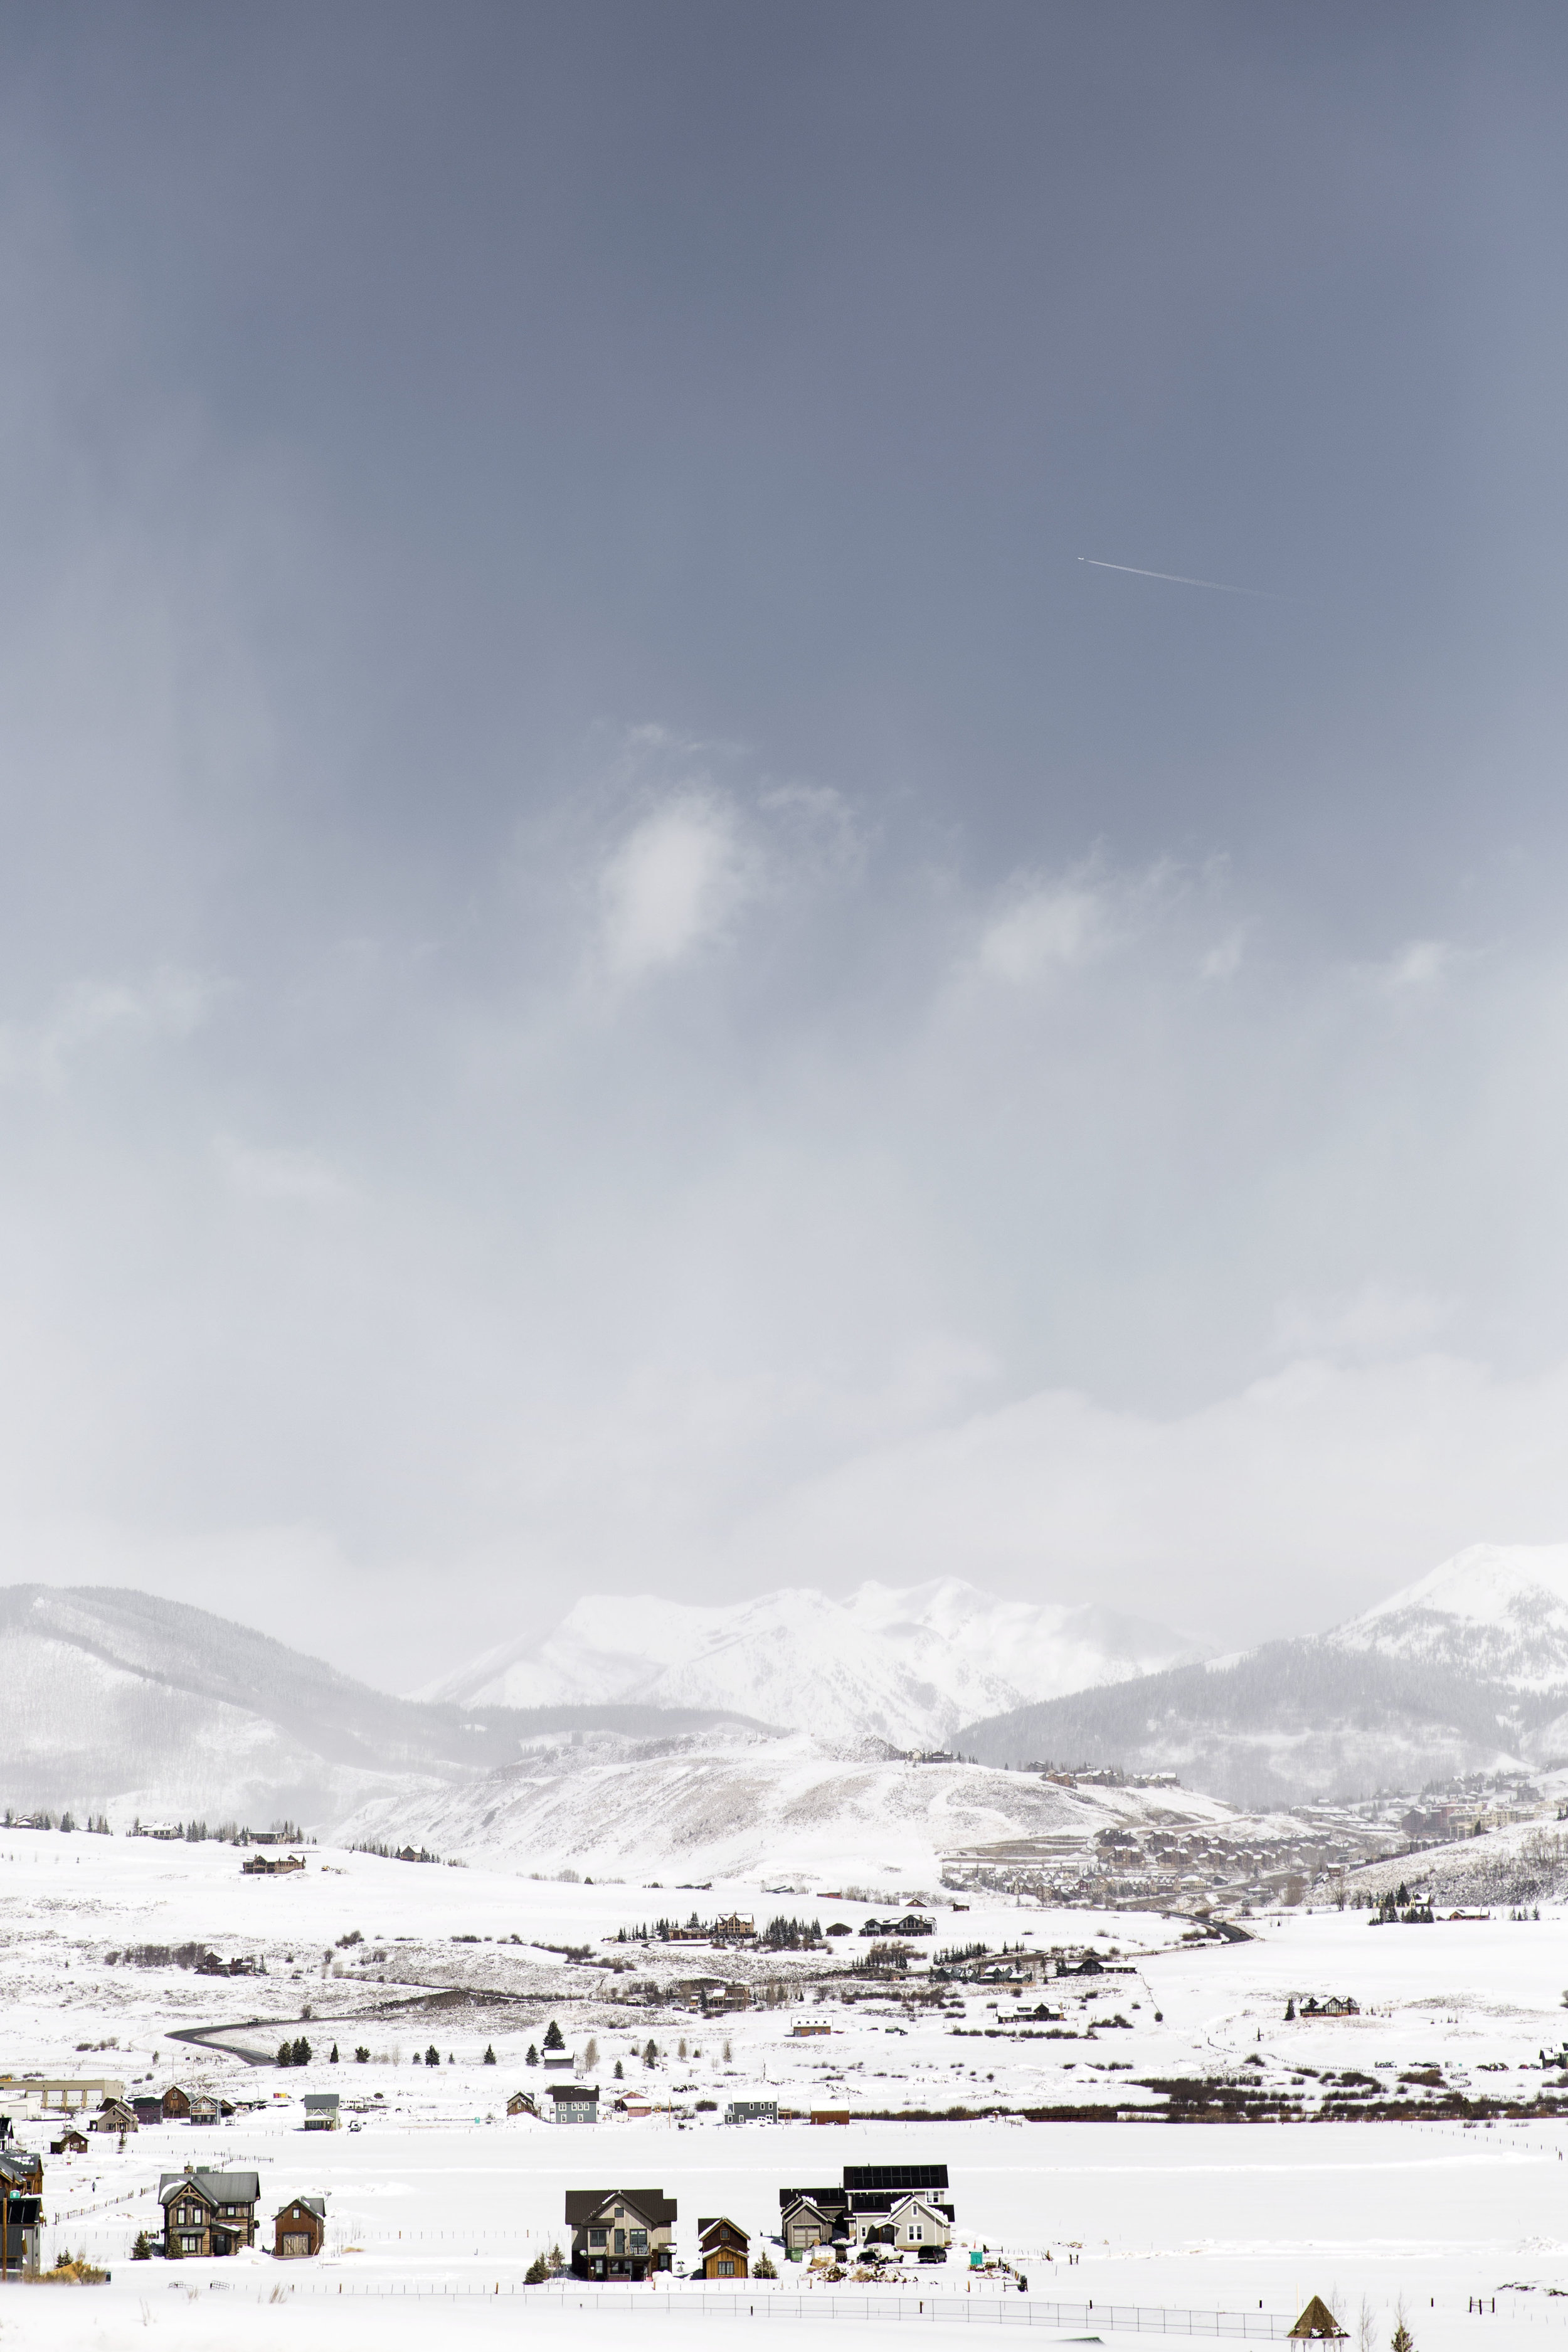 Crested Butte, Colorado sits at 8,885 feet above sea level. Photographed for Sunset Magazine. Colorado Editorial Photographer, Denver Editorial Photographer, Montana Editorial Photographer, Boulder Editorial Photographer.